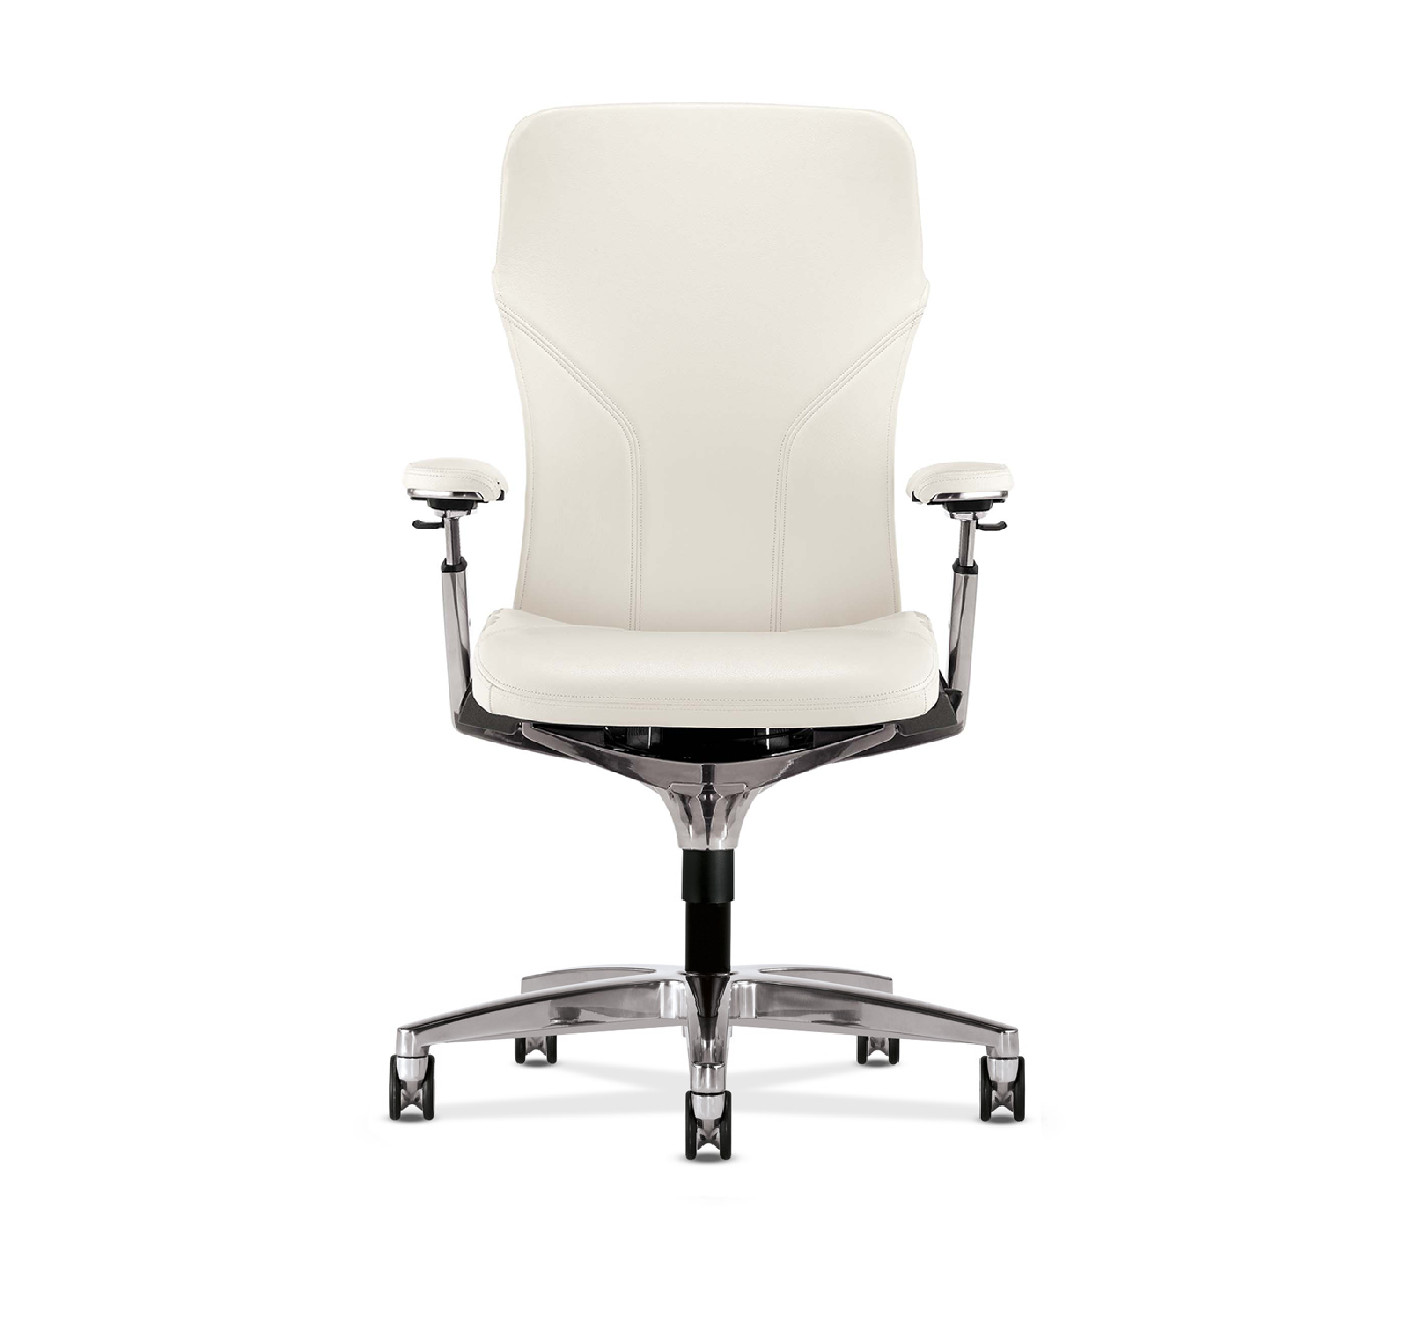 allsteel acuity chair outdoor chairs for balcony studio fifield